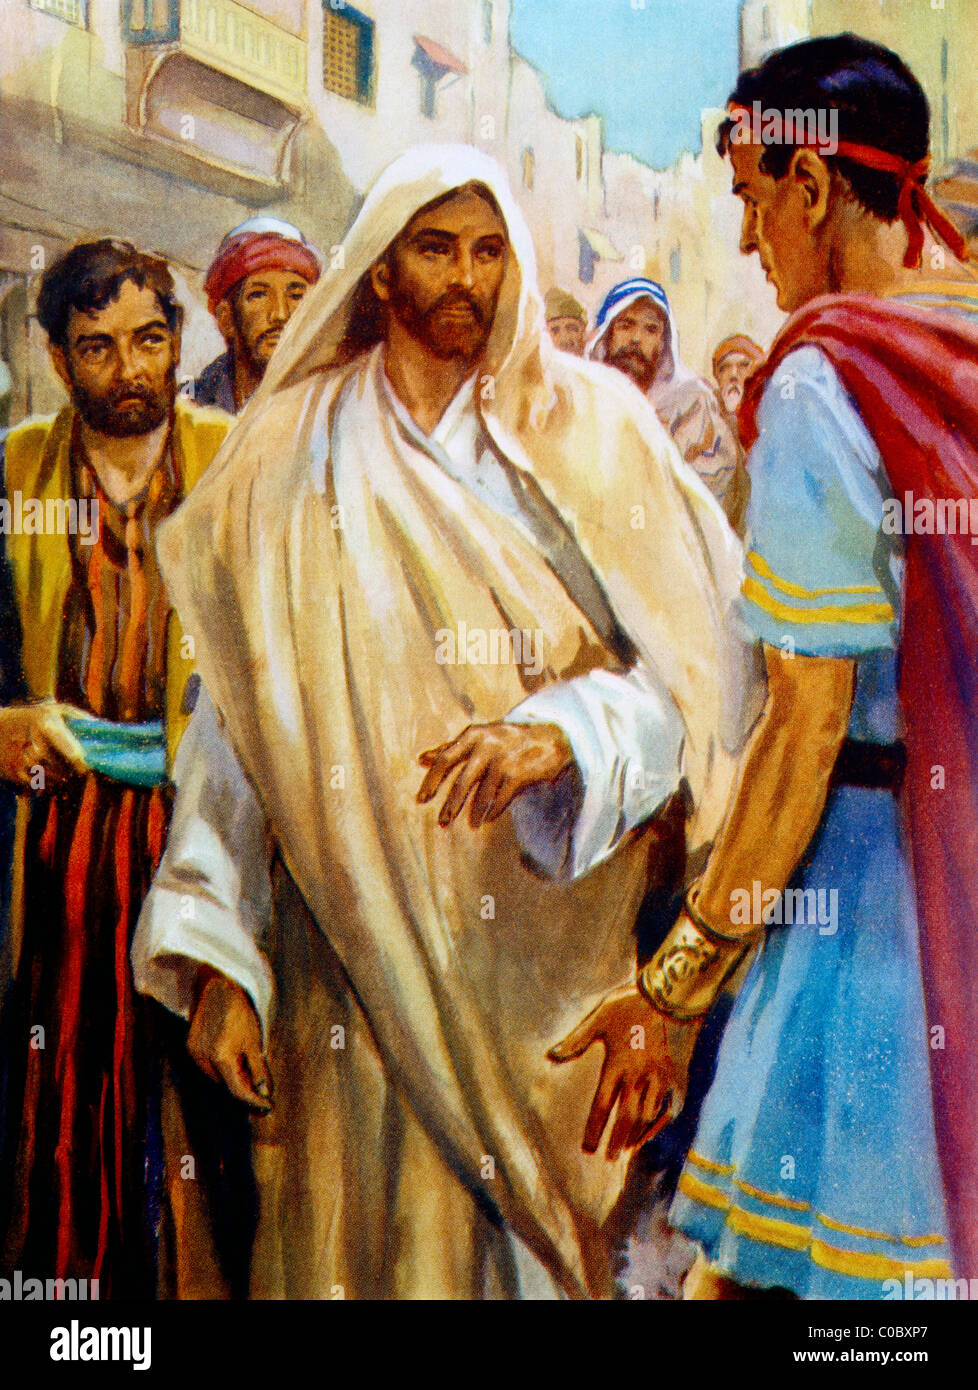 Jesus Is Astonished At The Centurion's Faith Painting By Henry Coller Bible Story - Stock Image